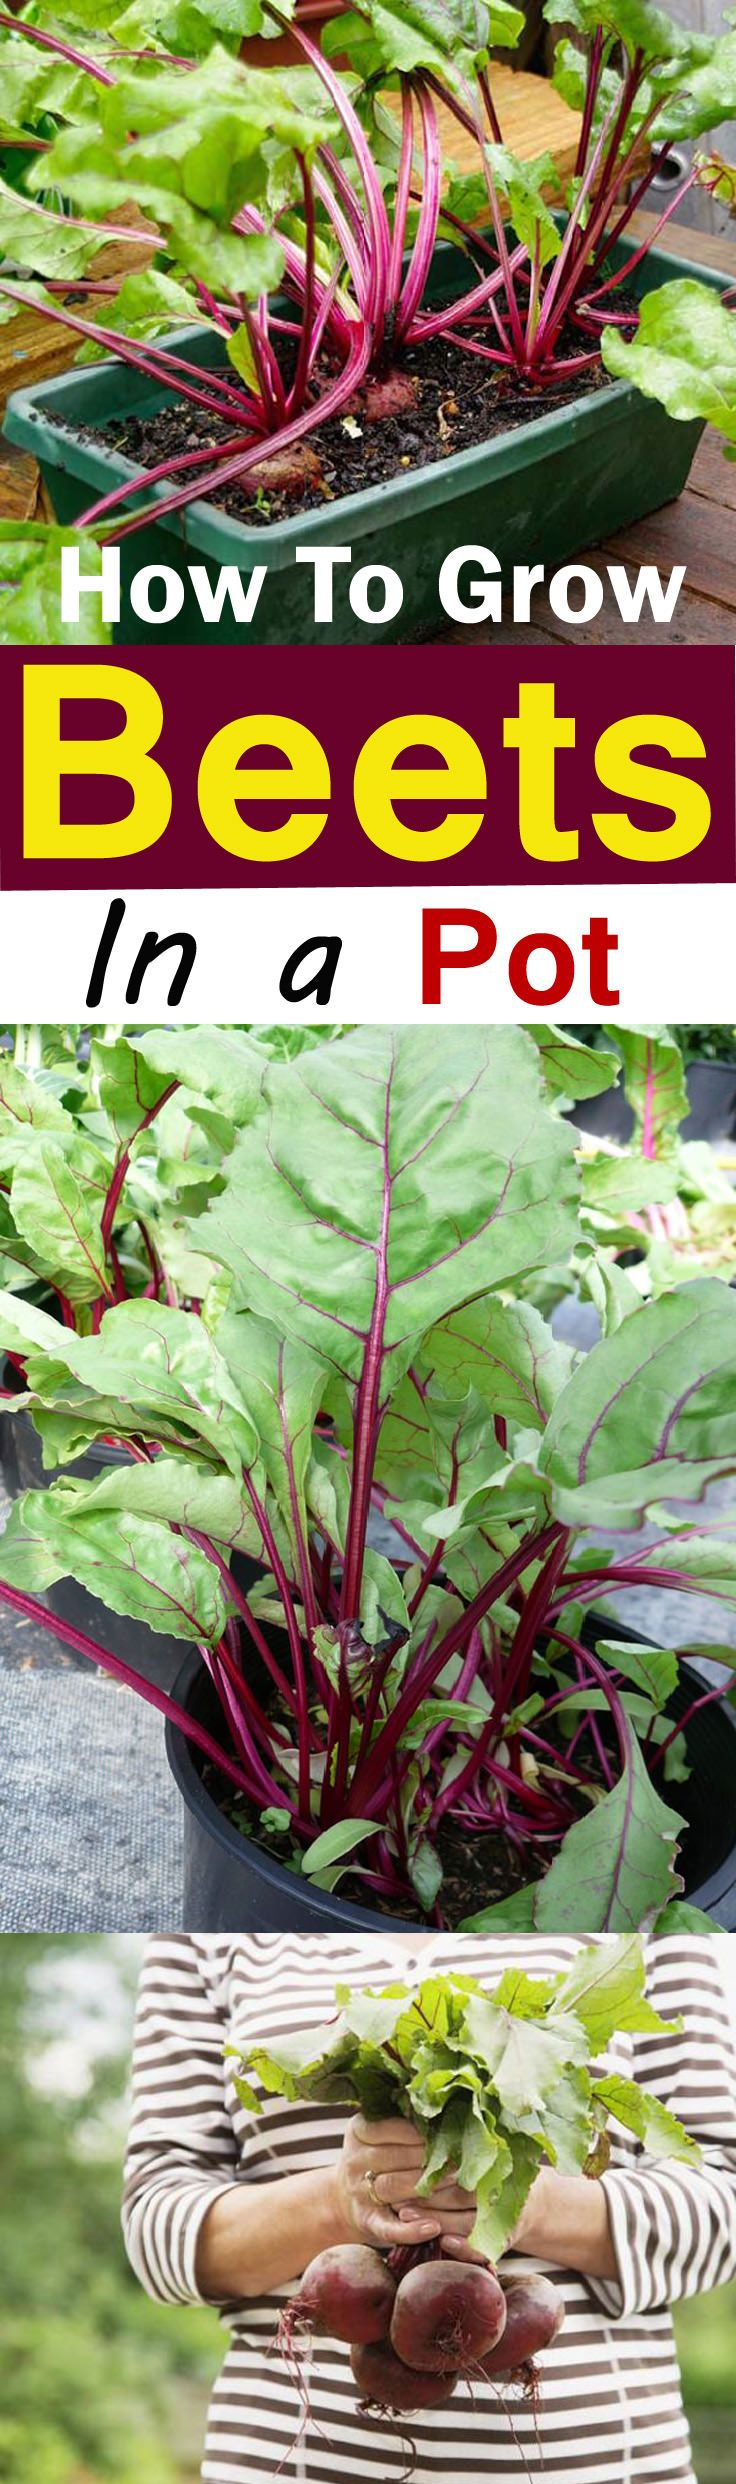 Growing Beets In Containers How To Grow Beets In Pots 400 x 300